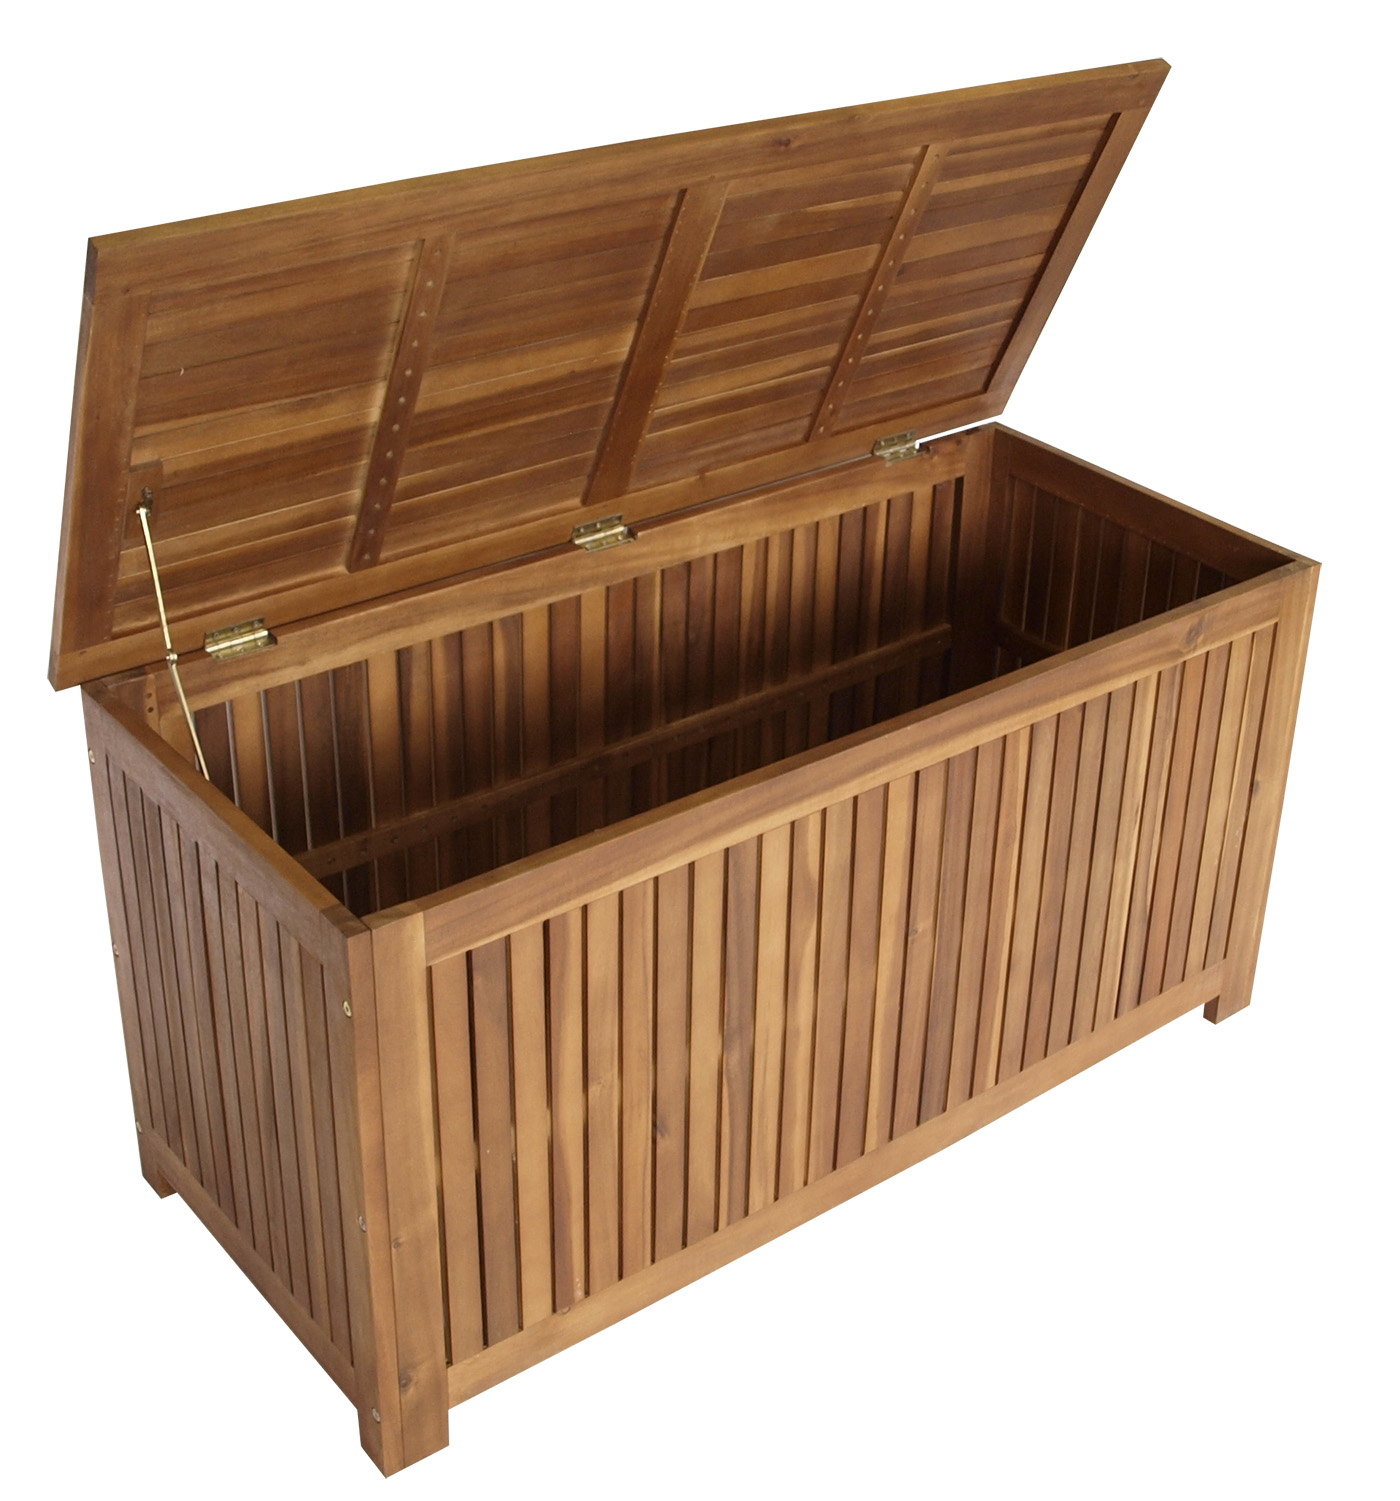 aufbewahrungsbox st vincent fsc gartenbox gartentruhe. Black Bedroom Furniture Sets. Home Design Ideas